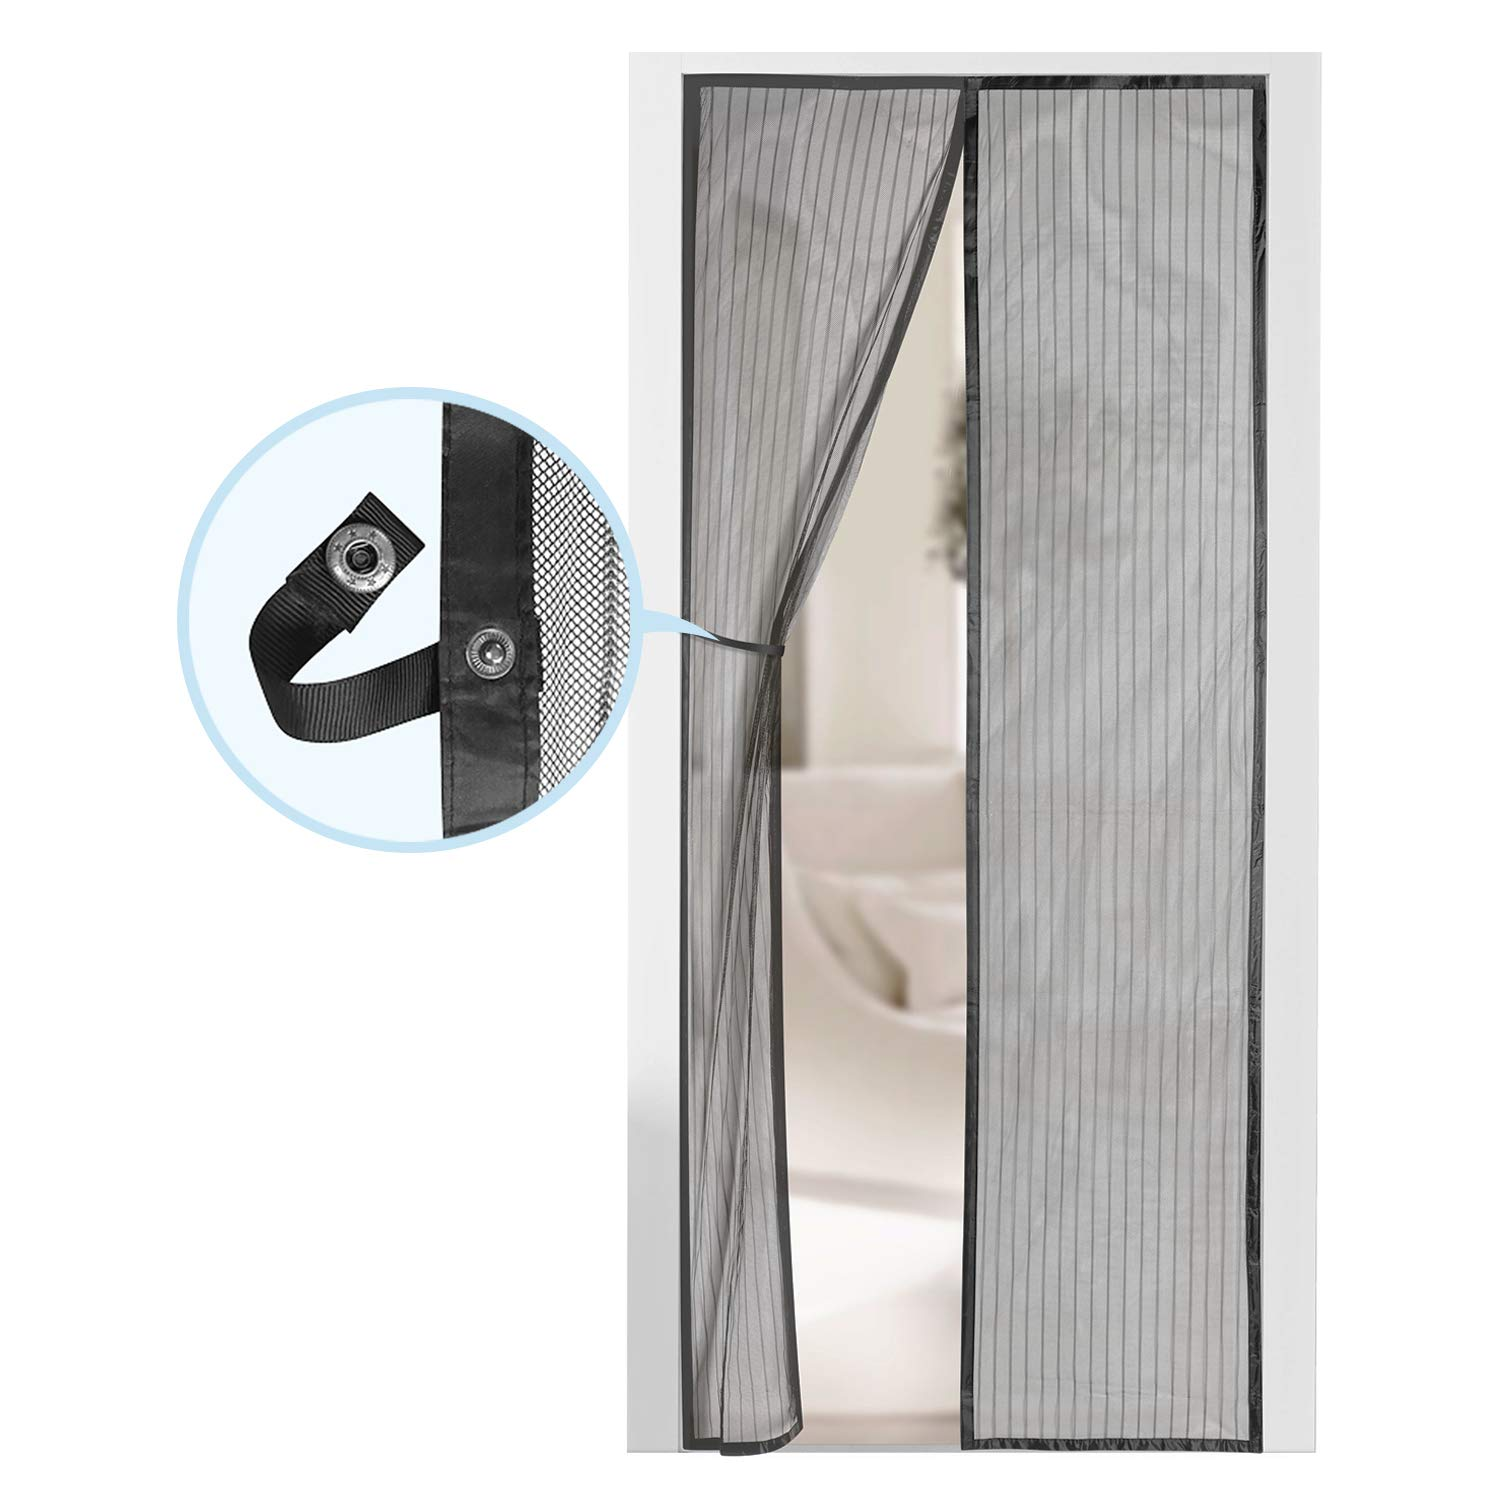 Magnetic Screen Door - Self Sealing, Heavy Duty, Hands Free Mesh Partition Keeps Bugs Out - Pet and Kid Friendly - Patent Pending Keep Open Feature - 38'' x 83'' - by Augo by AUGO